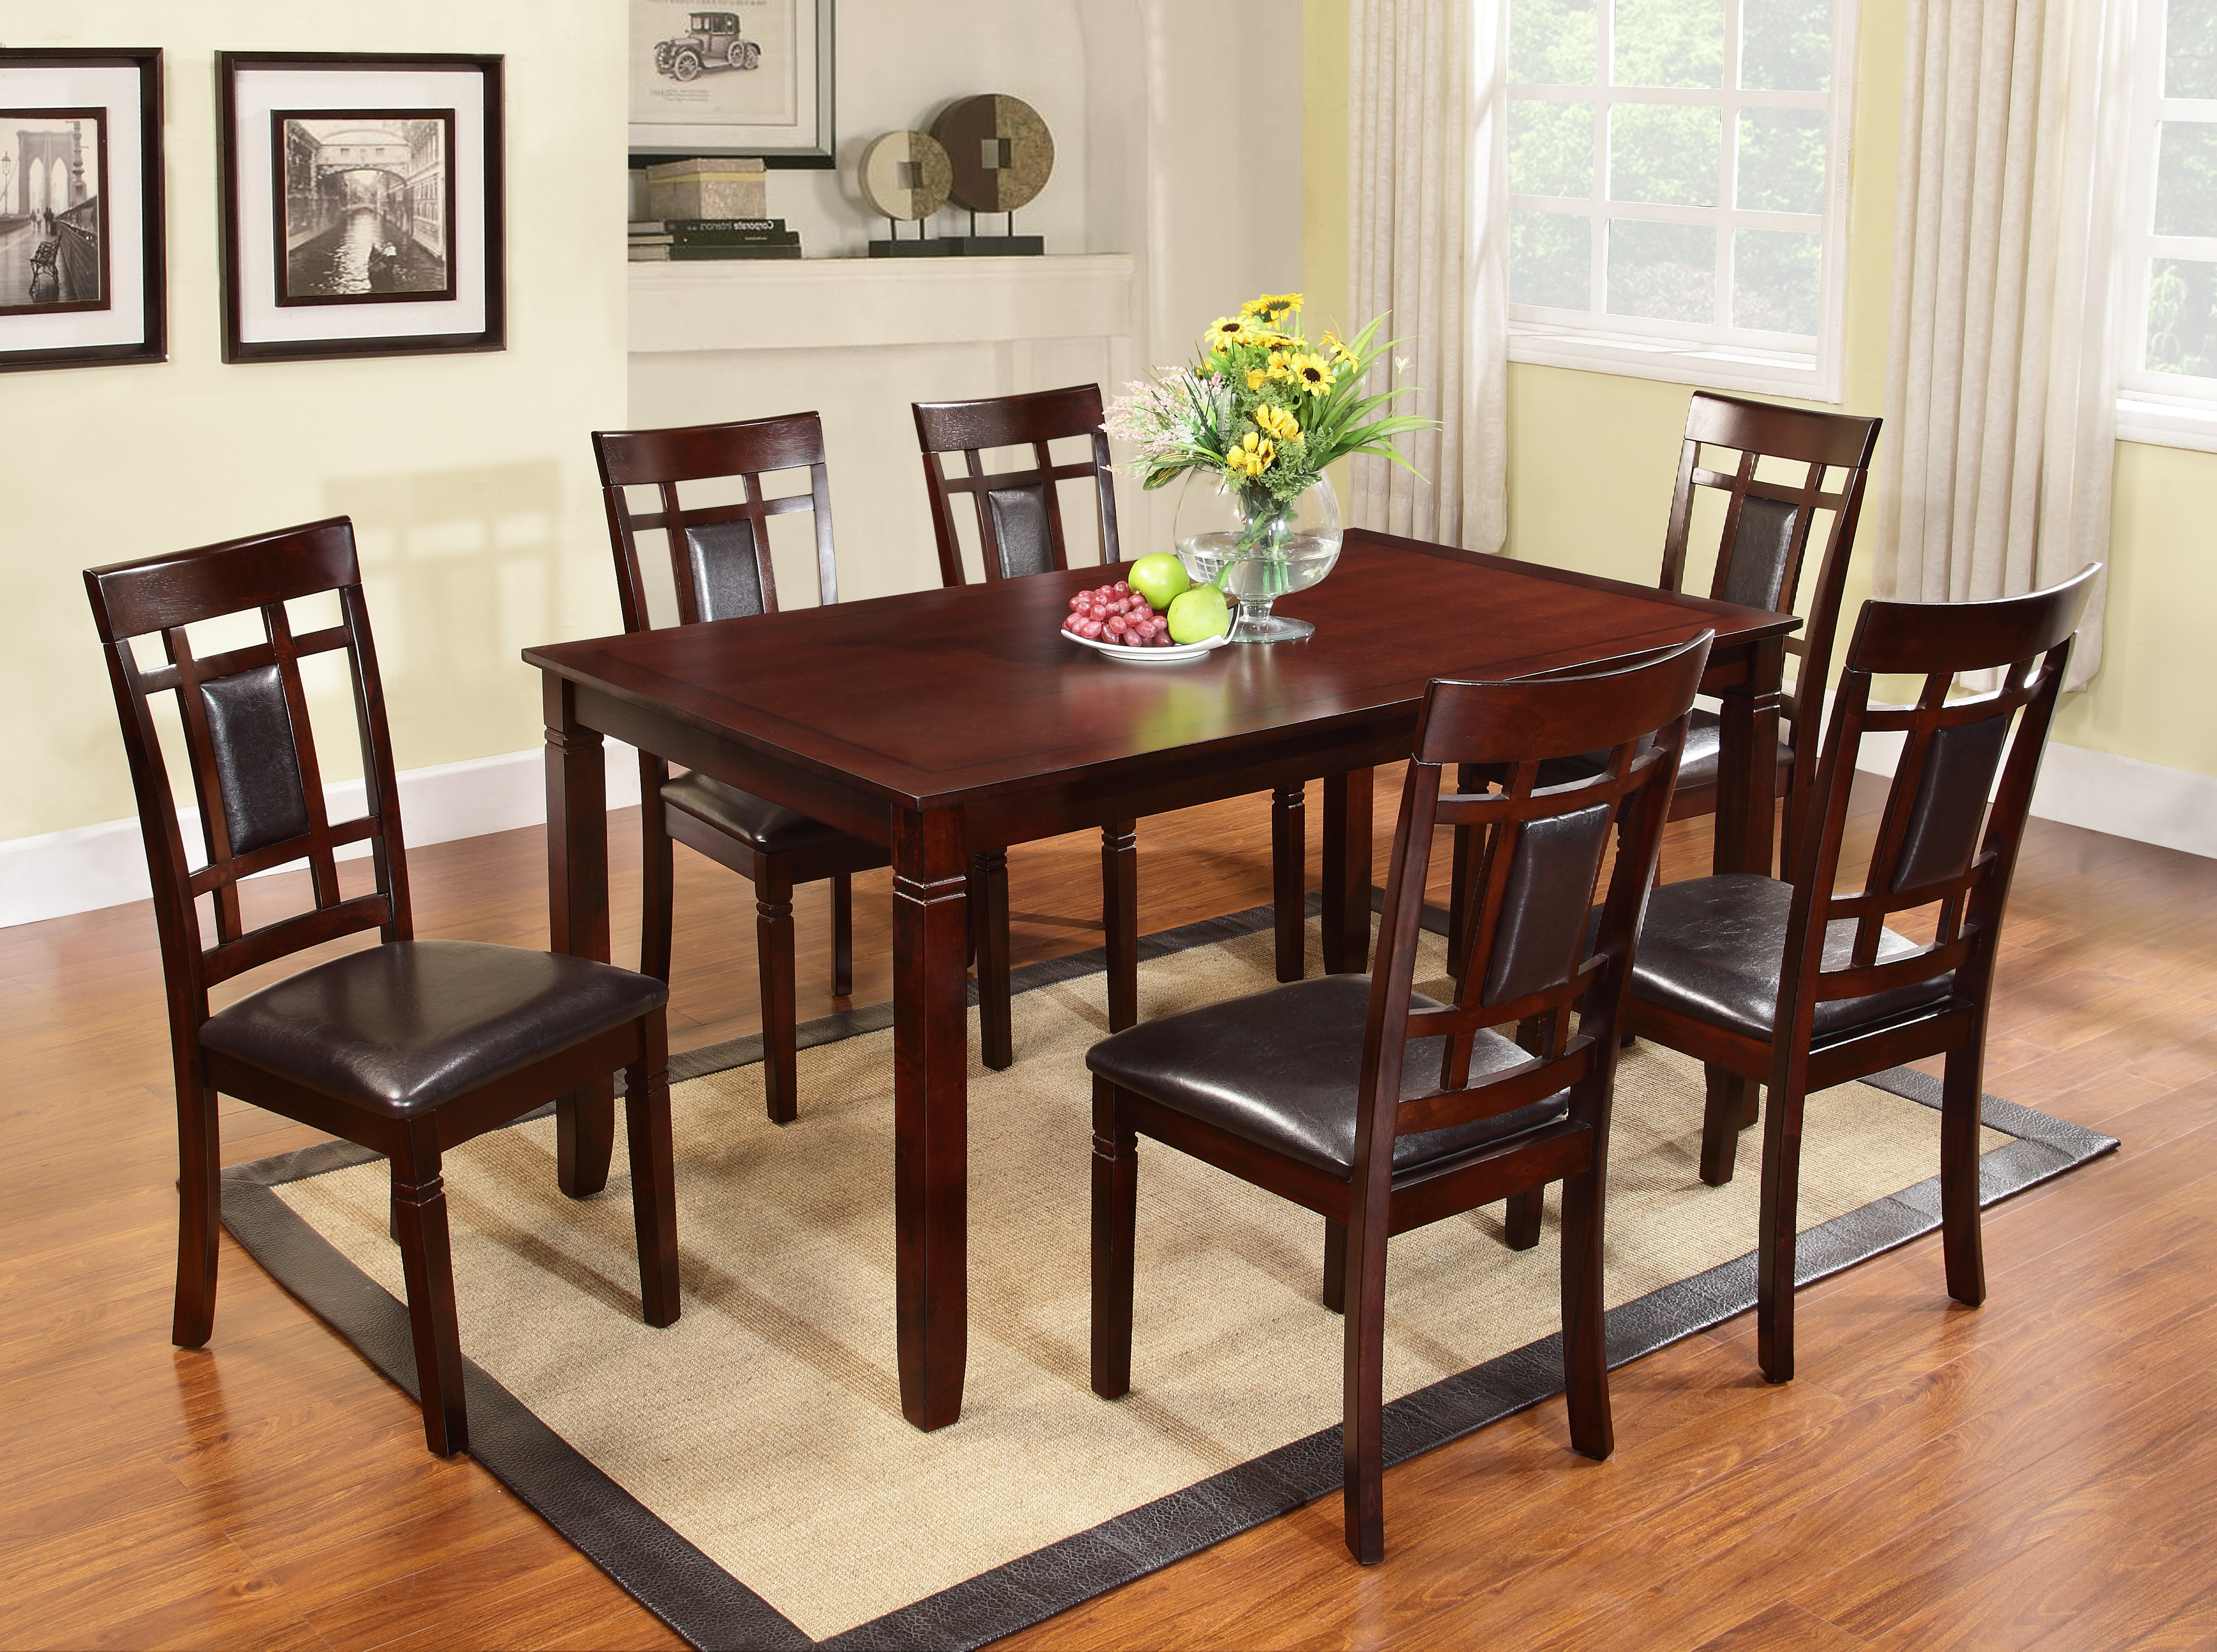 Wayfair Intended For 2019 Ligon 3 Piece Breakfast Nook Dining Sets (View 7 of 25)